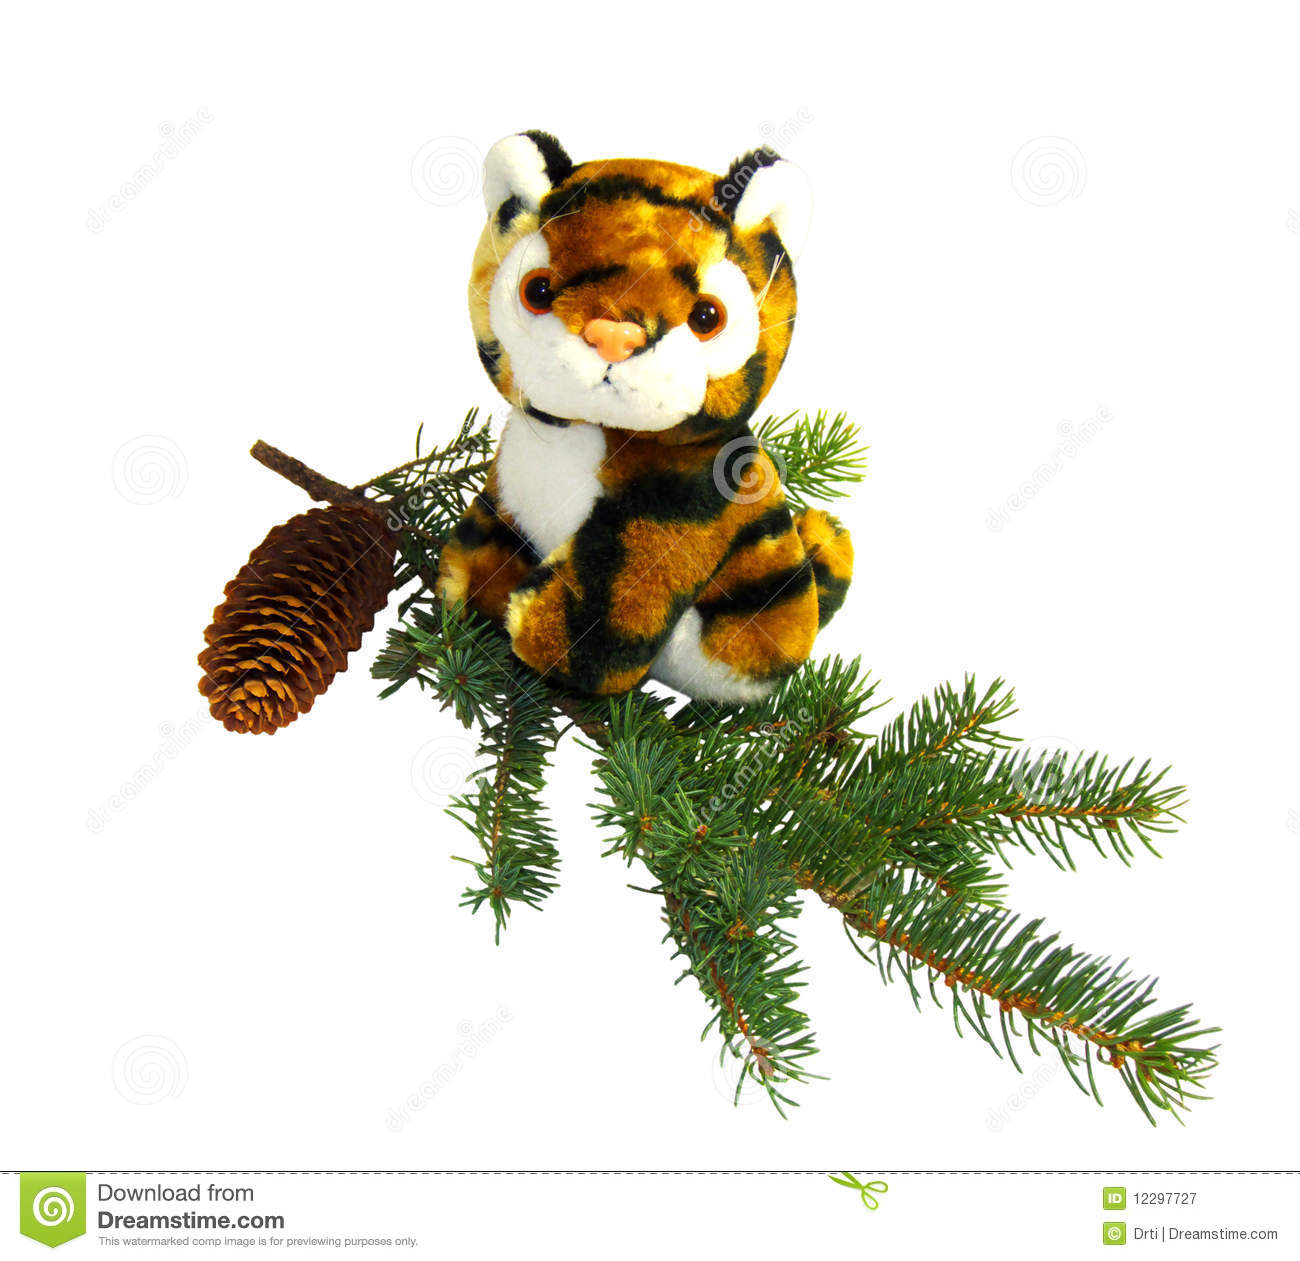 Tiger Symbol Of The New Year 2022 Stock Image Image Of Pine